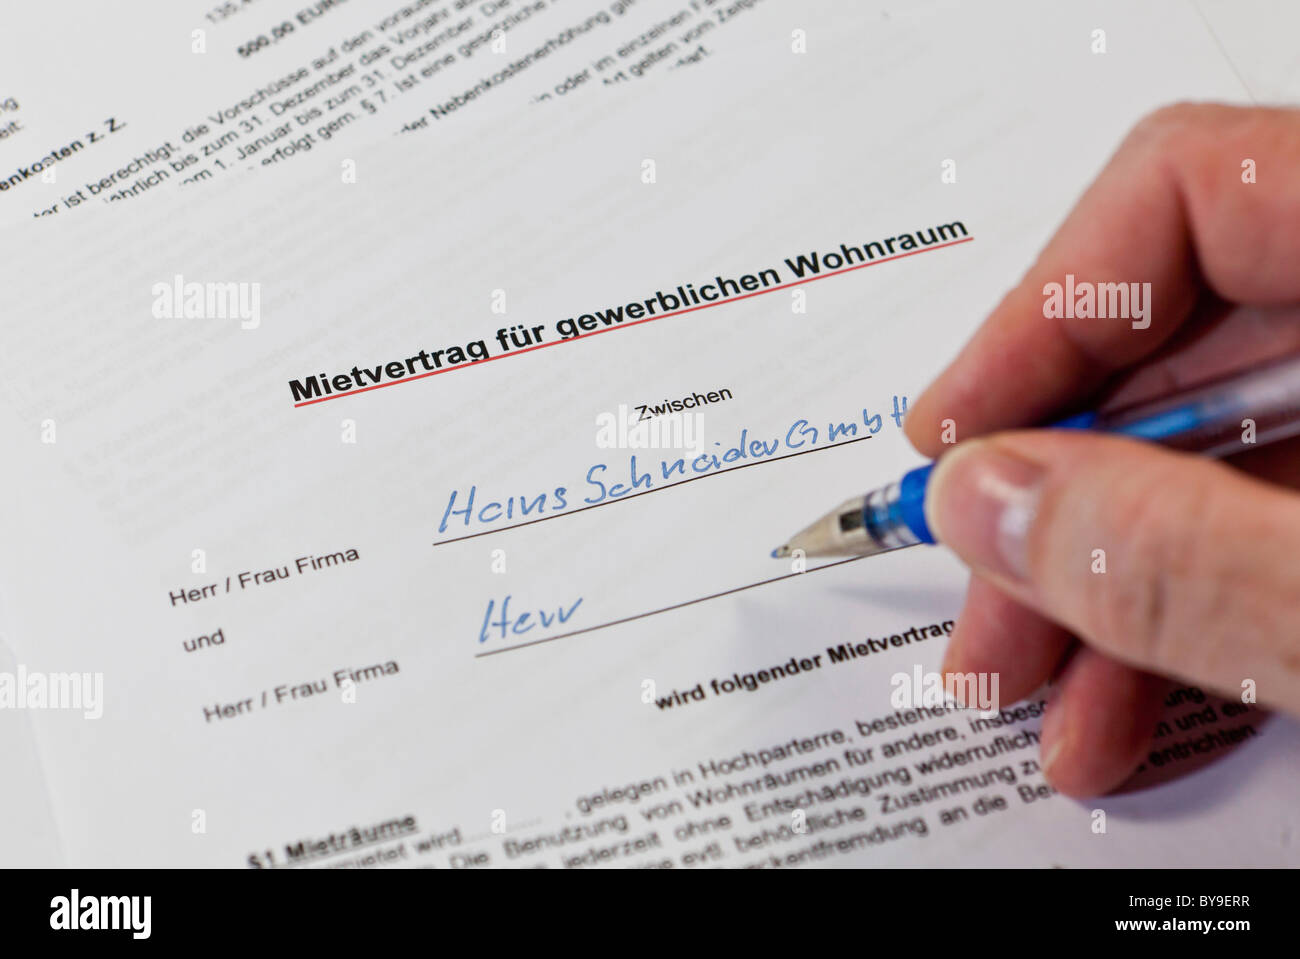 Blank Contract Stock Photos & Blank Contract Stock Images - Alamy